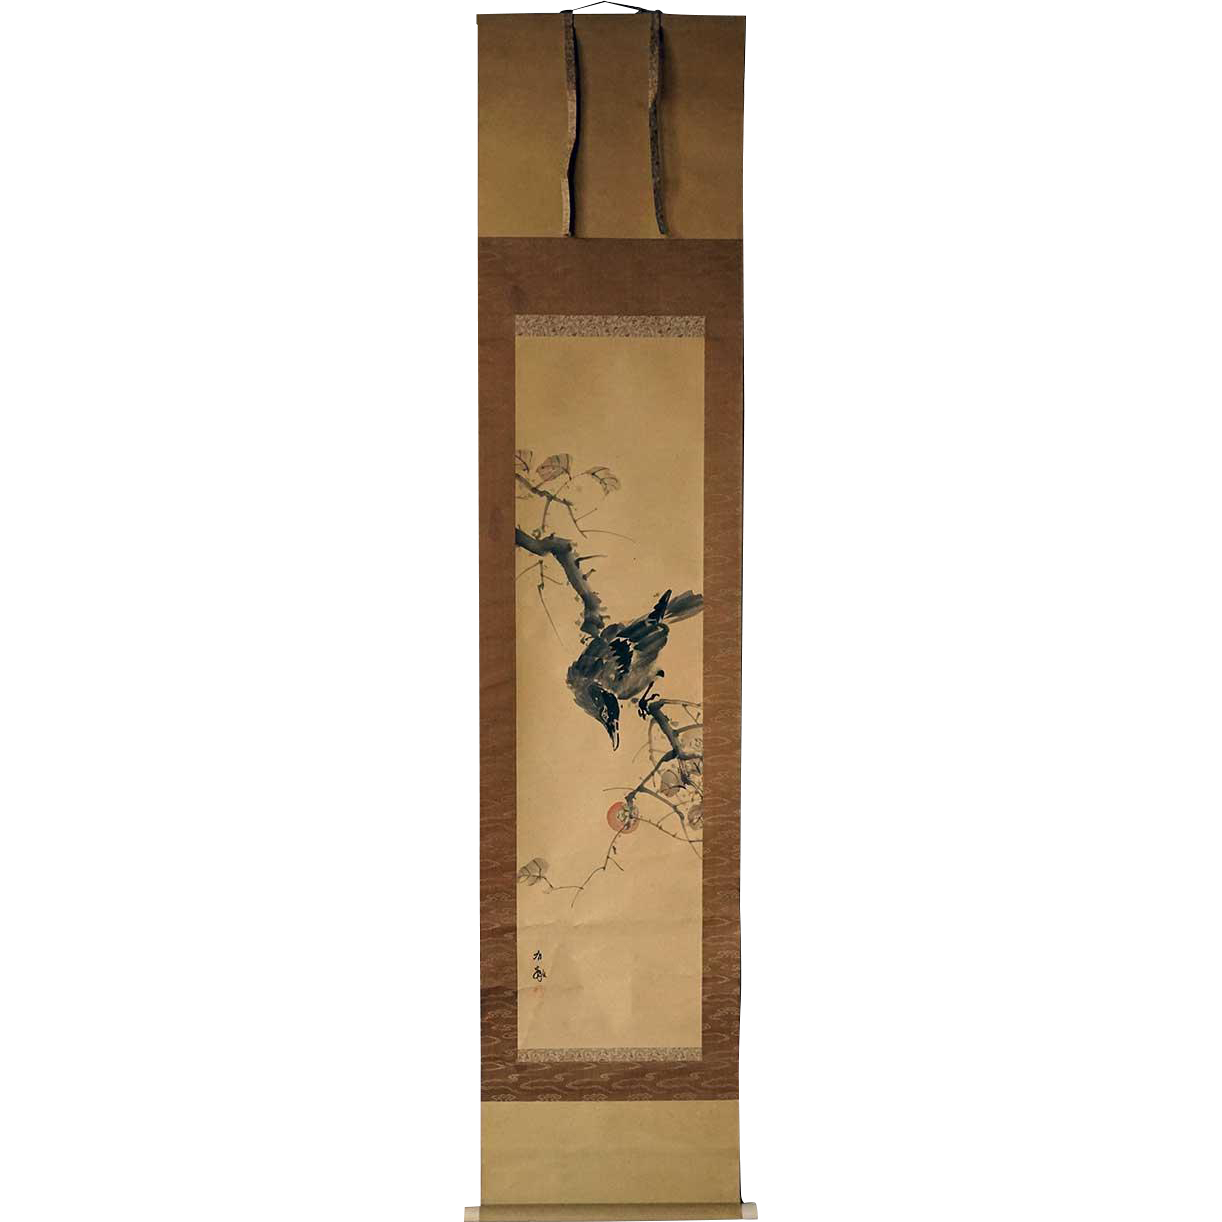 Vintage Japanese Ink Painting on Paper Vertical Hanging Scroll (Kakejiku) of a Crow and Persimmon